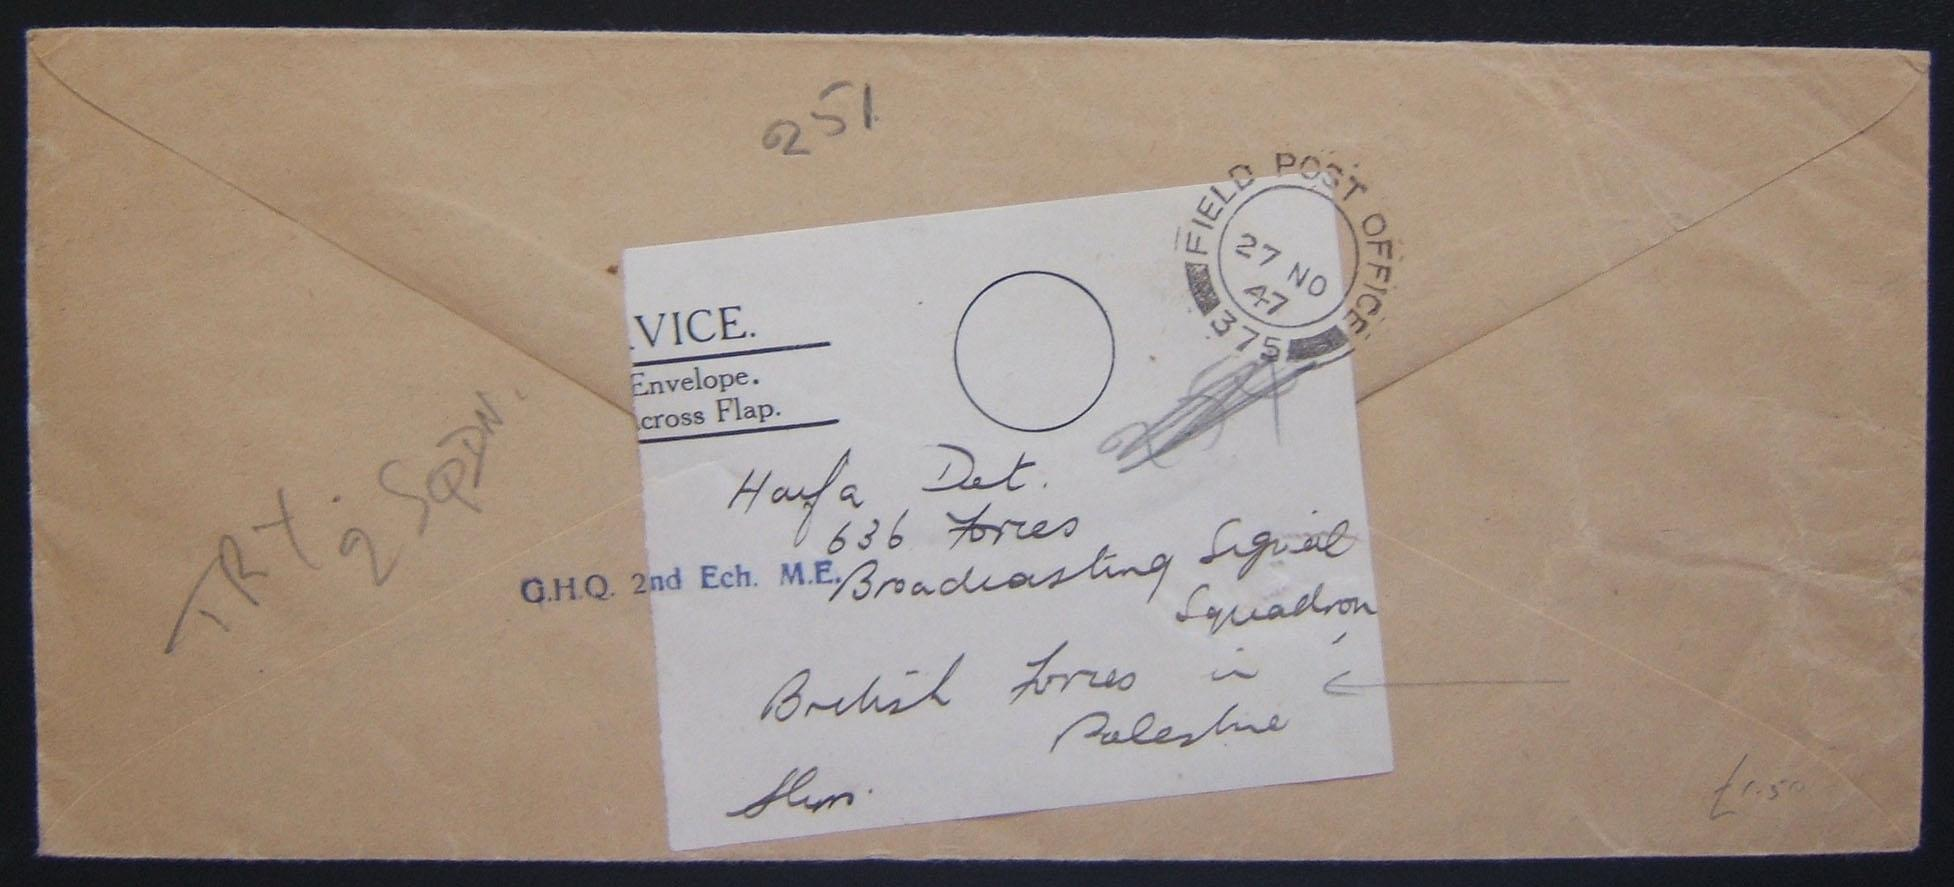 OHMS stampless cover ex FPO 375 (Moascar GHQ, Egypt) to Broadcasting Signal Squadron, HAIFA 27 NO 47, rerouted